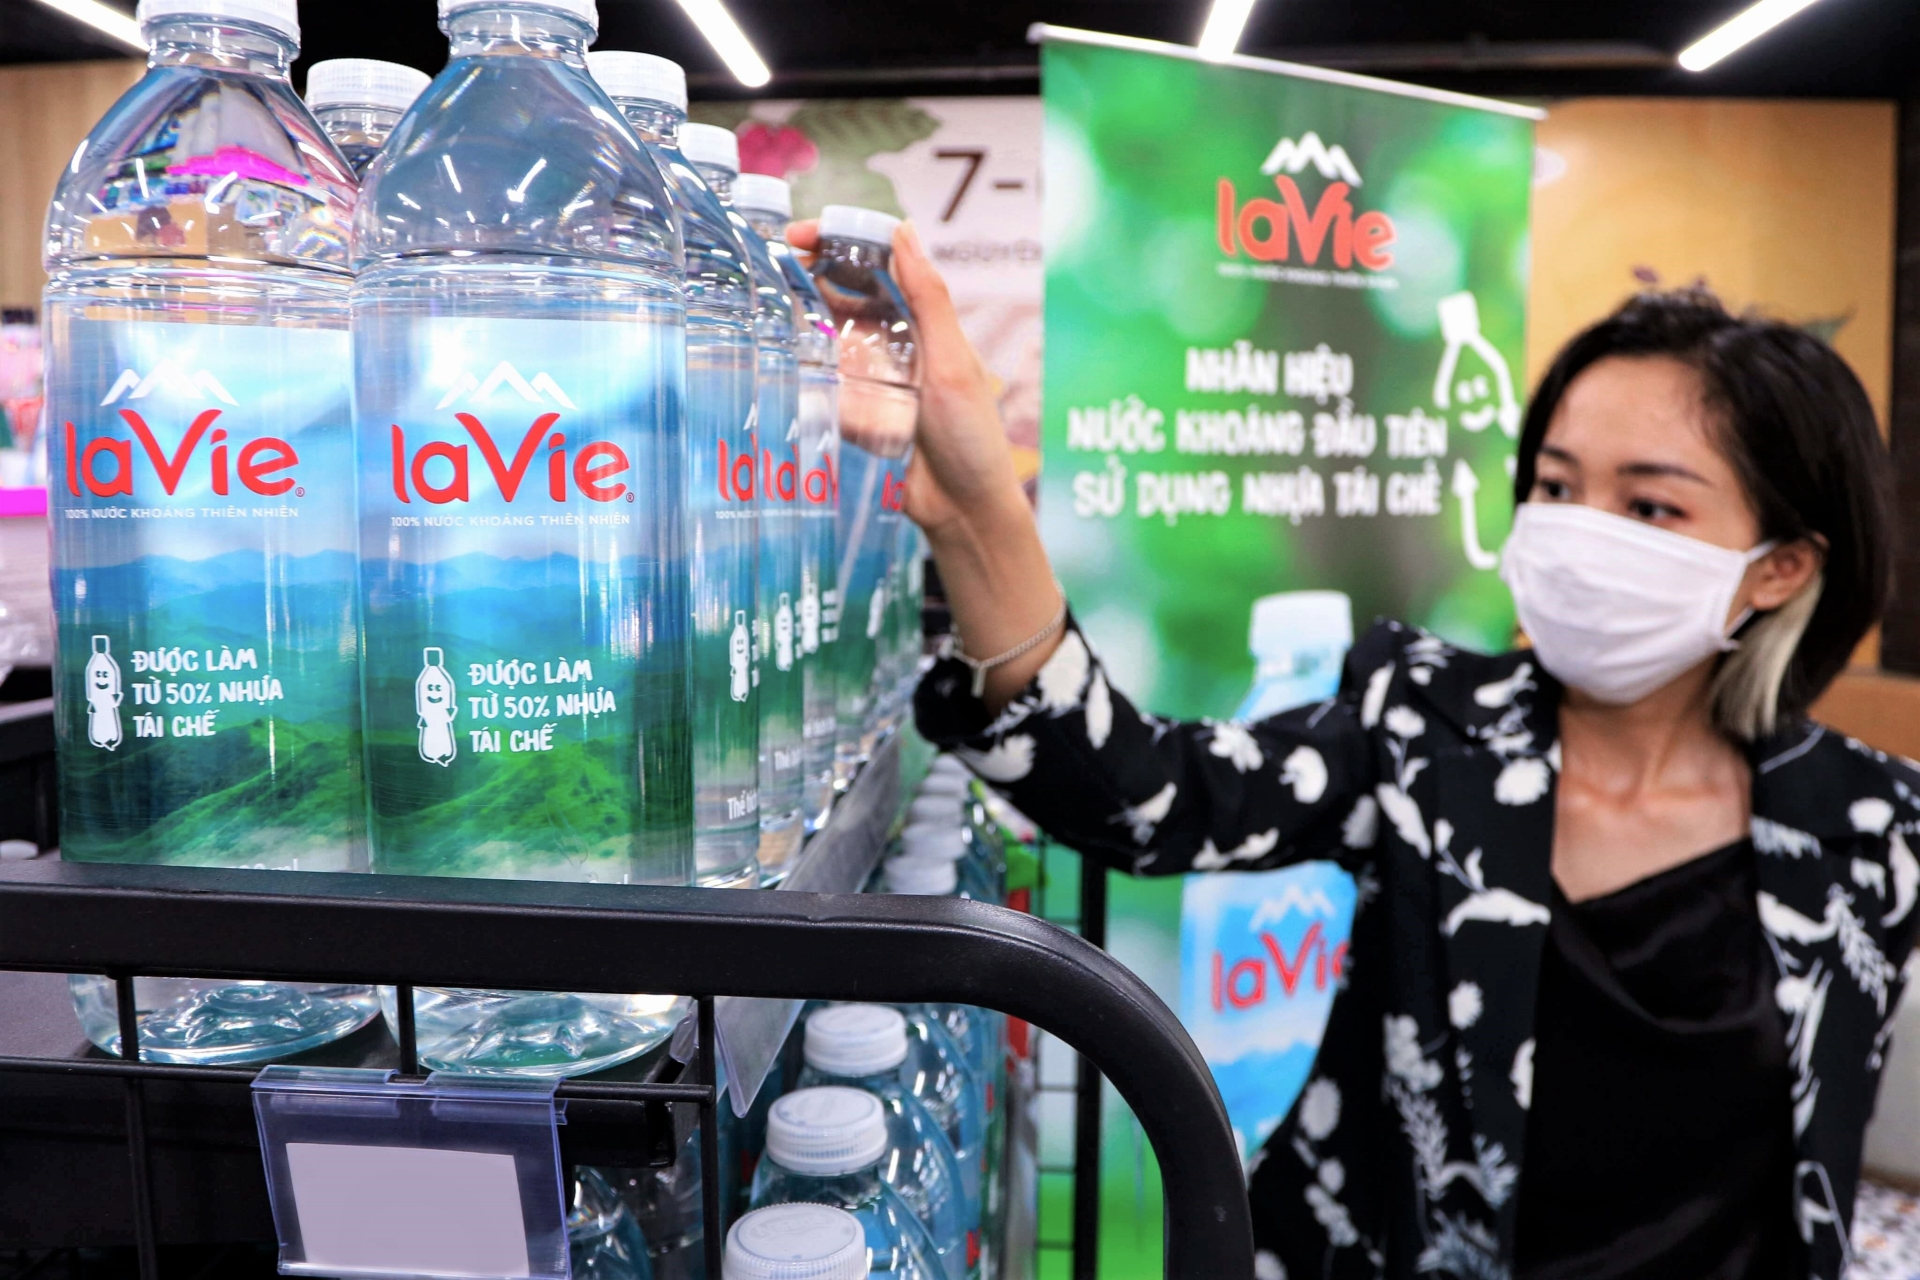 recycled plastic bottles become new trend of green consumption